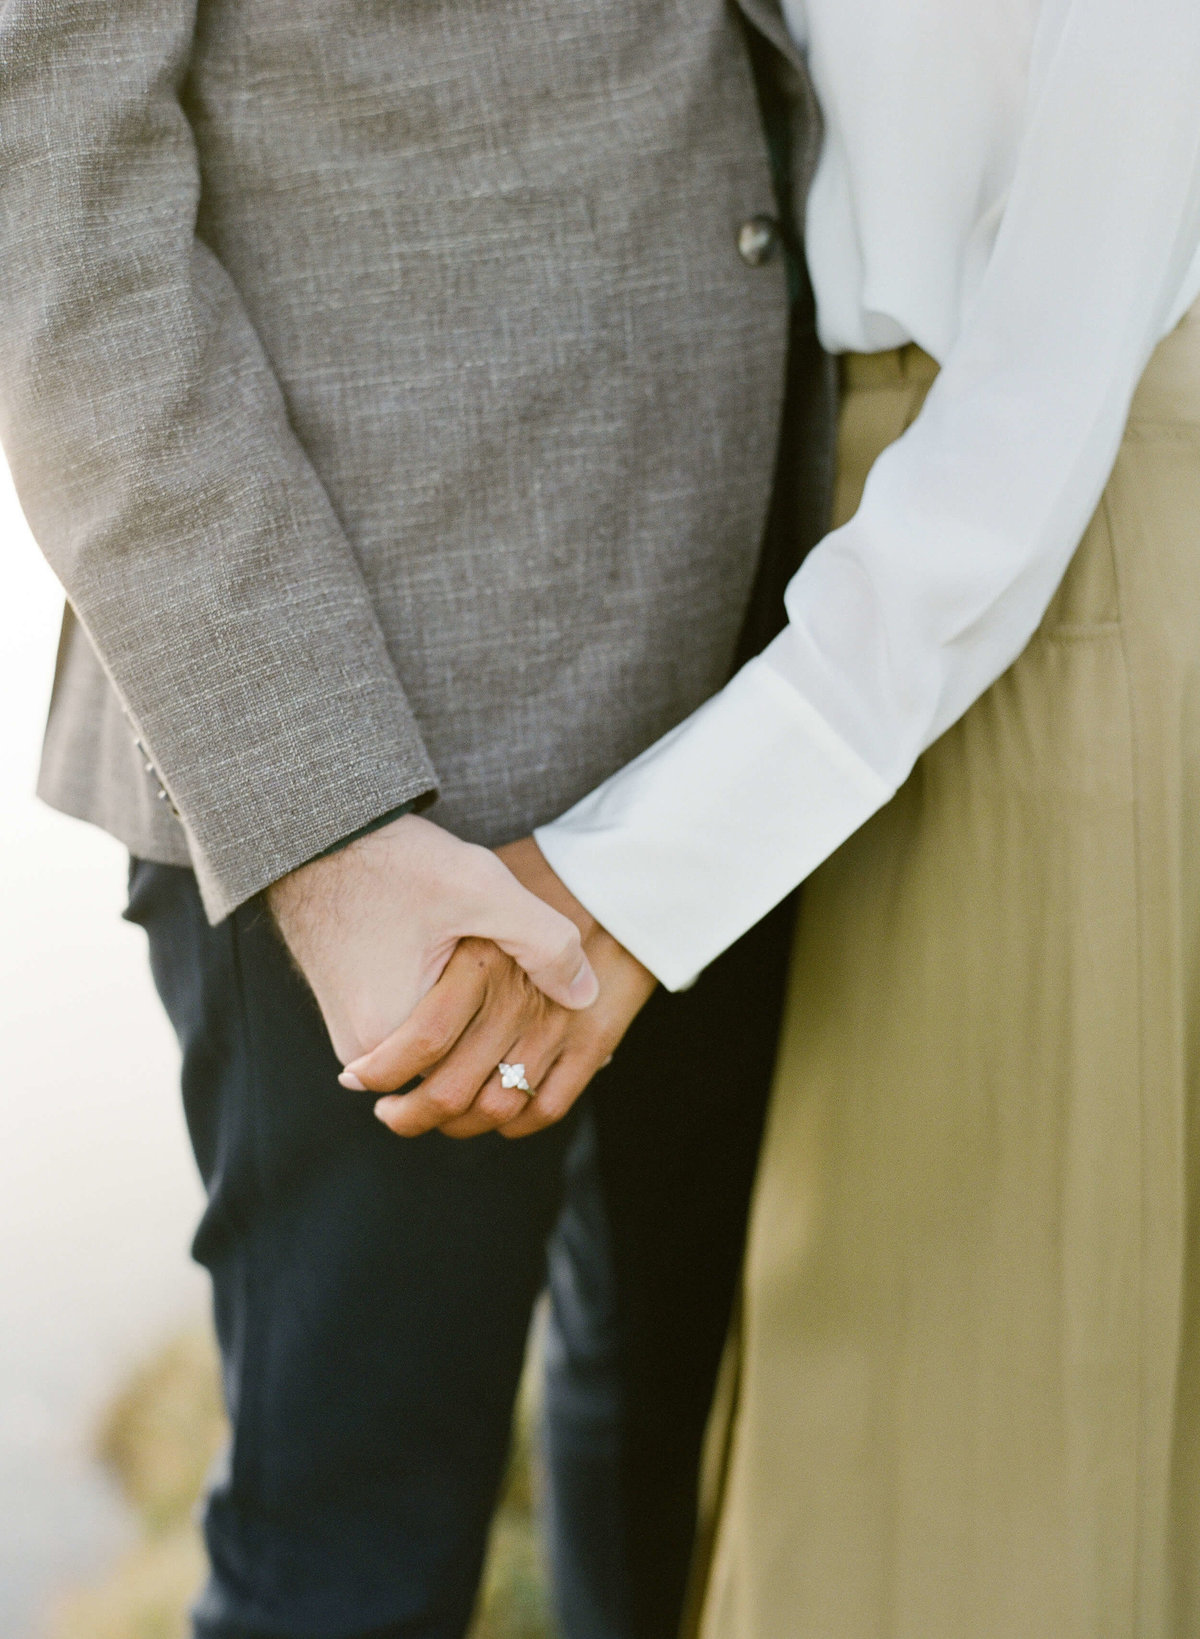 28-KTMerry-engagement-photography-holding-hands-portrait